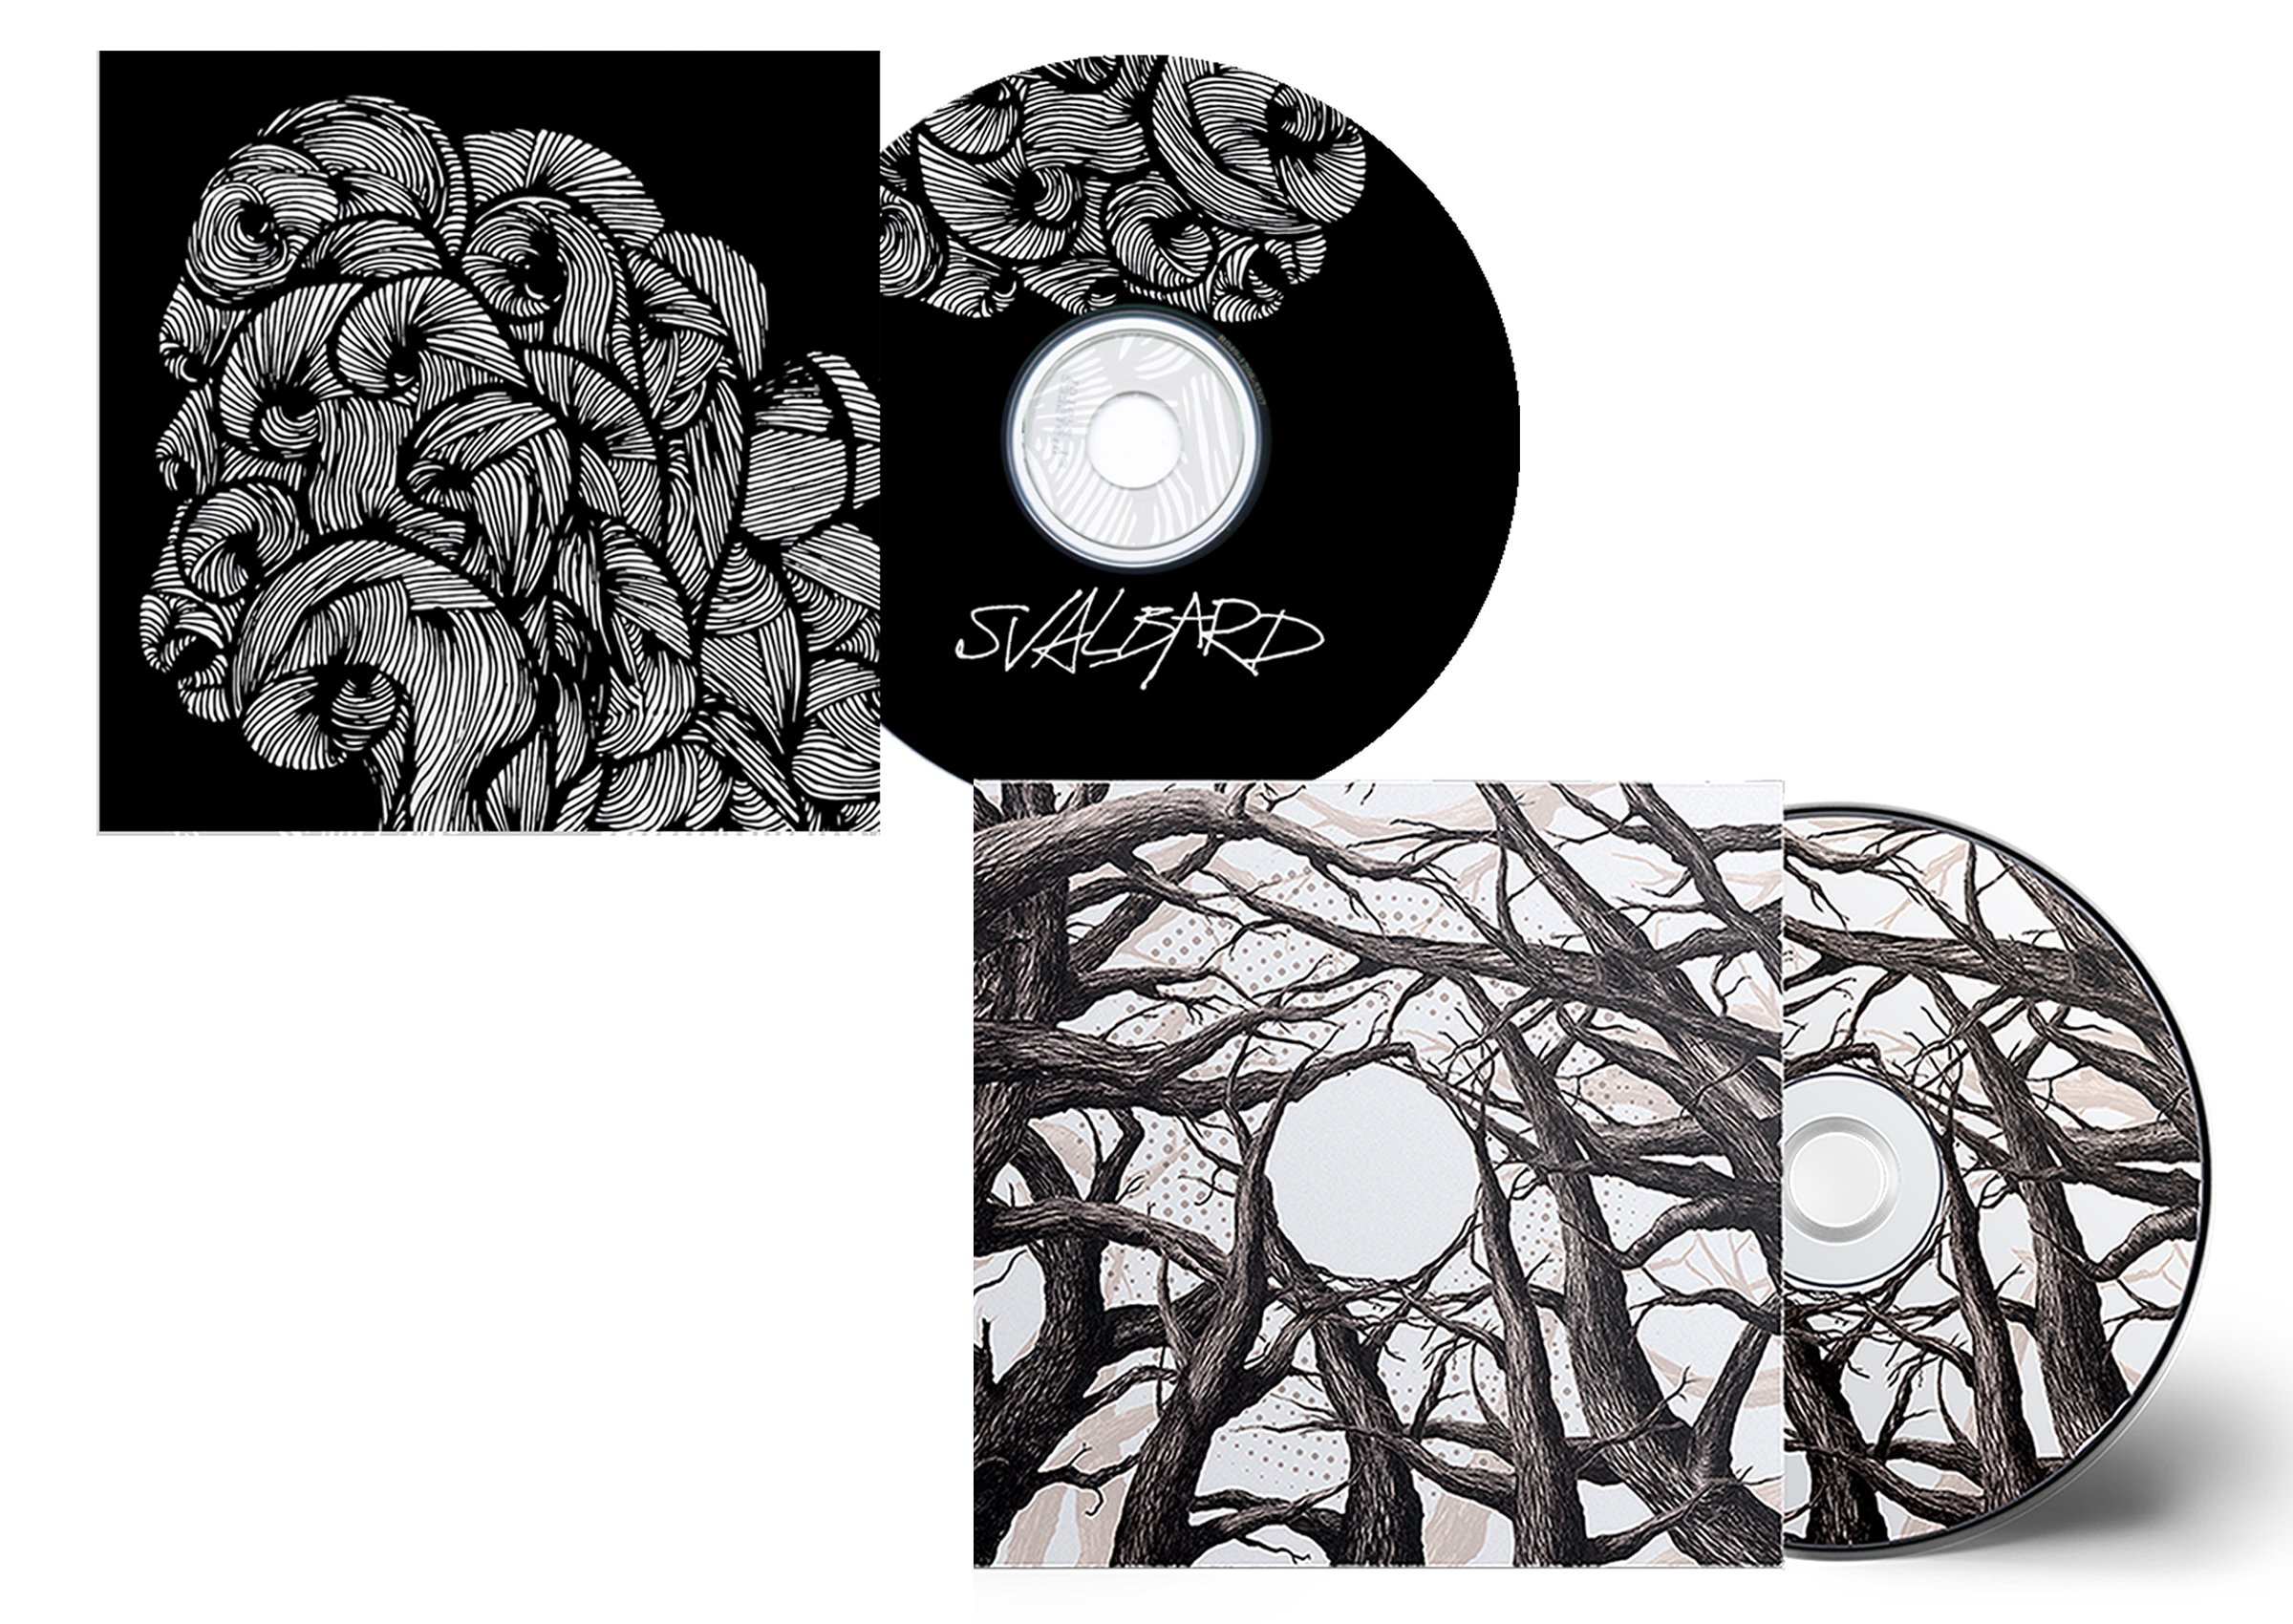 Svalbard - It's Hard To Have Hope CD + 'One day all...' CD